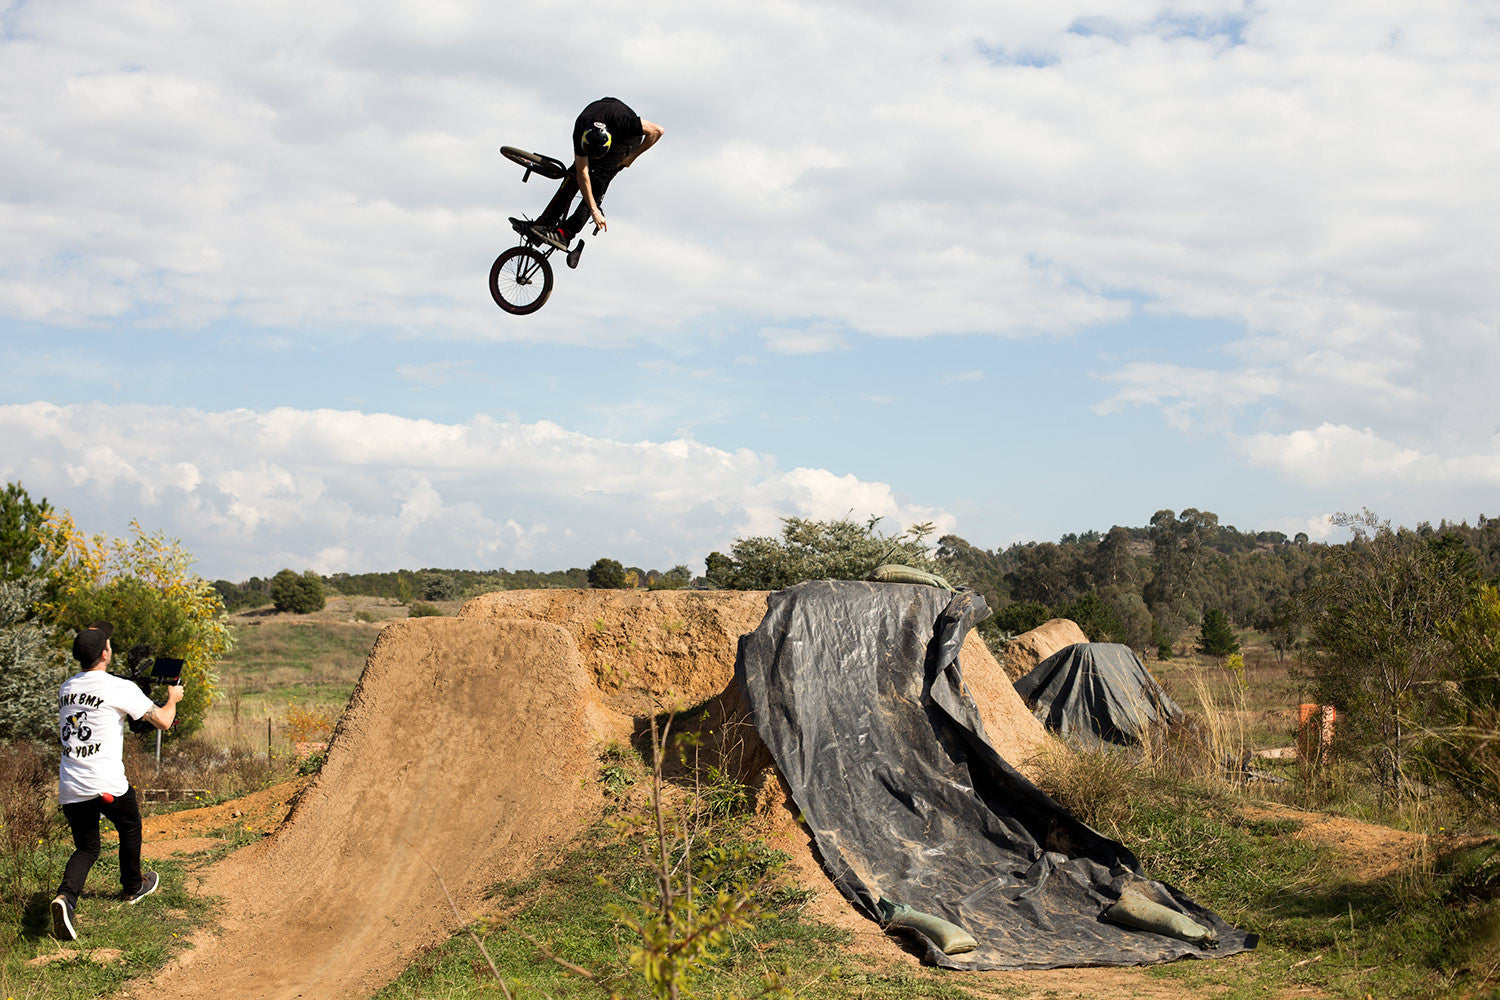 Chris Doyle 360 turndown